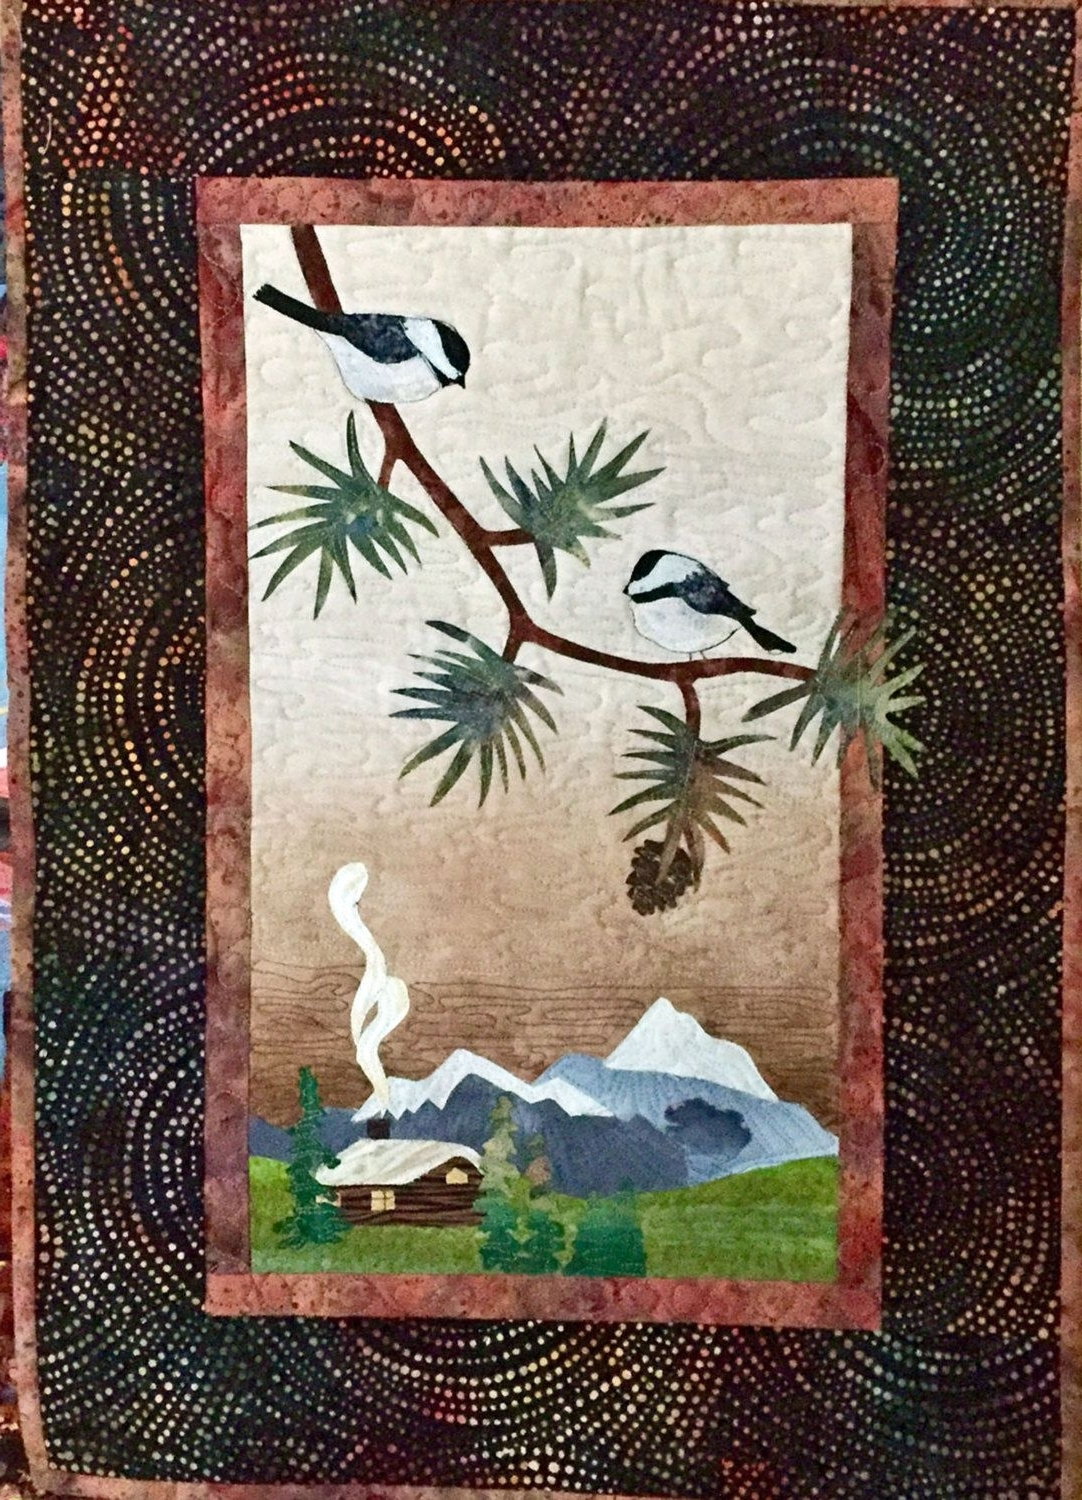 Most Recently Released Landscape Quilted Fiber Wall Hanging Chickadees, Log Cabin Intended For Fabric Applique Wall Art (View 10 of 15)